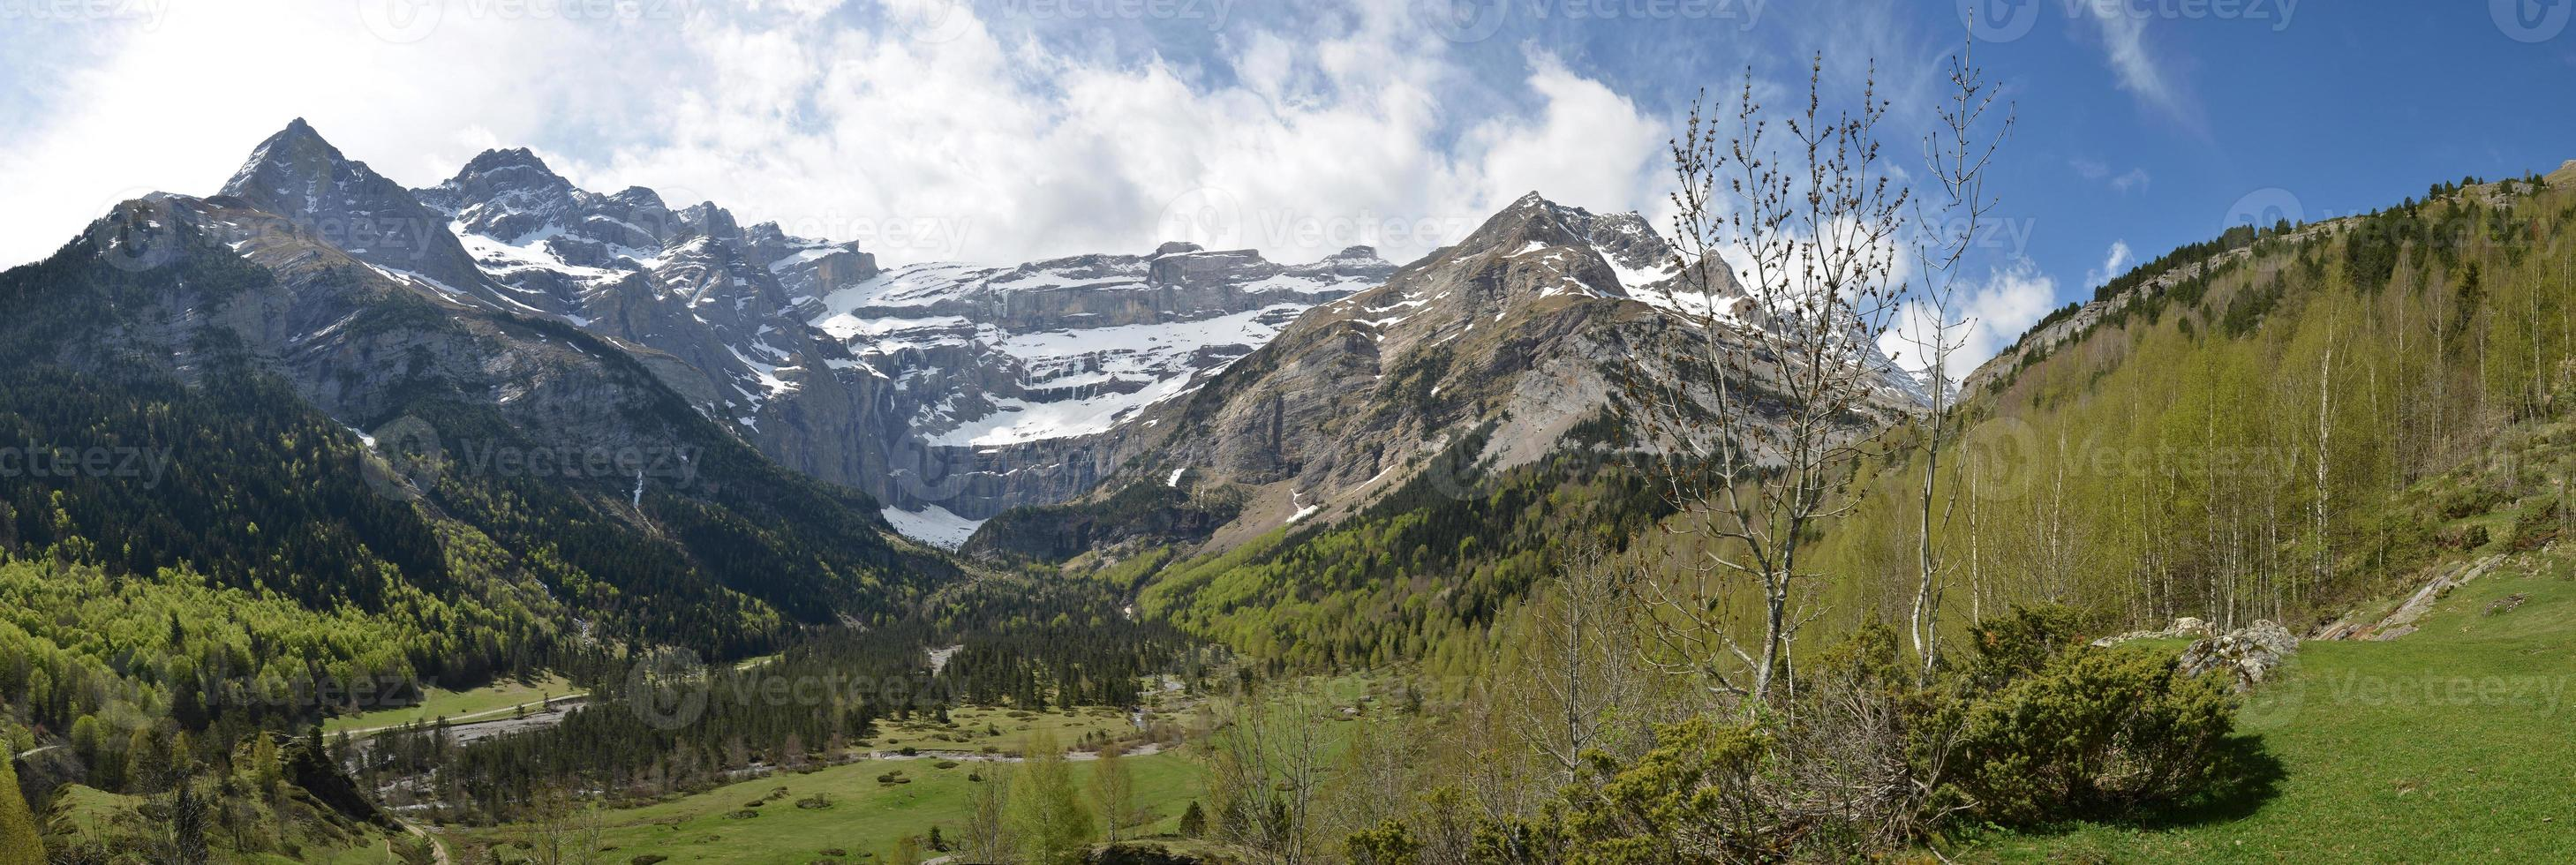 Spring panoramic view of the cirque of Gavarnie photo